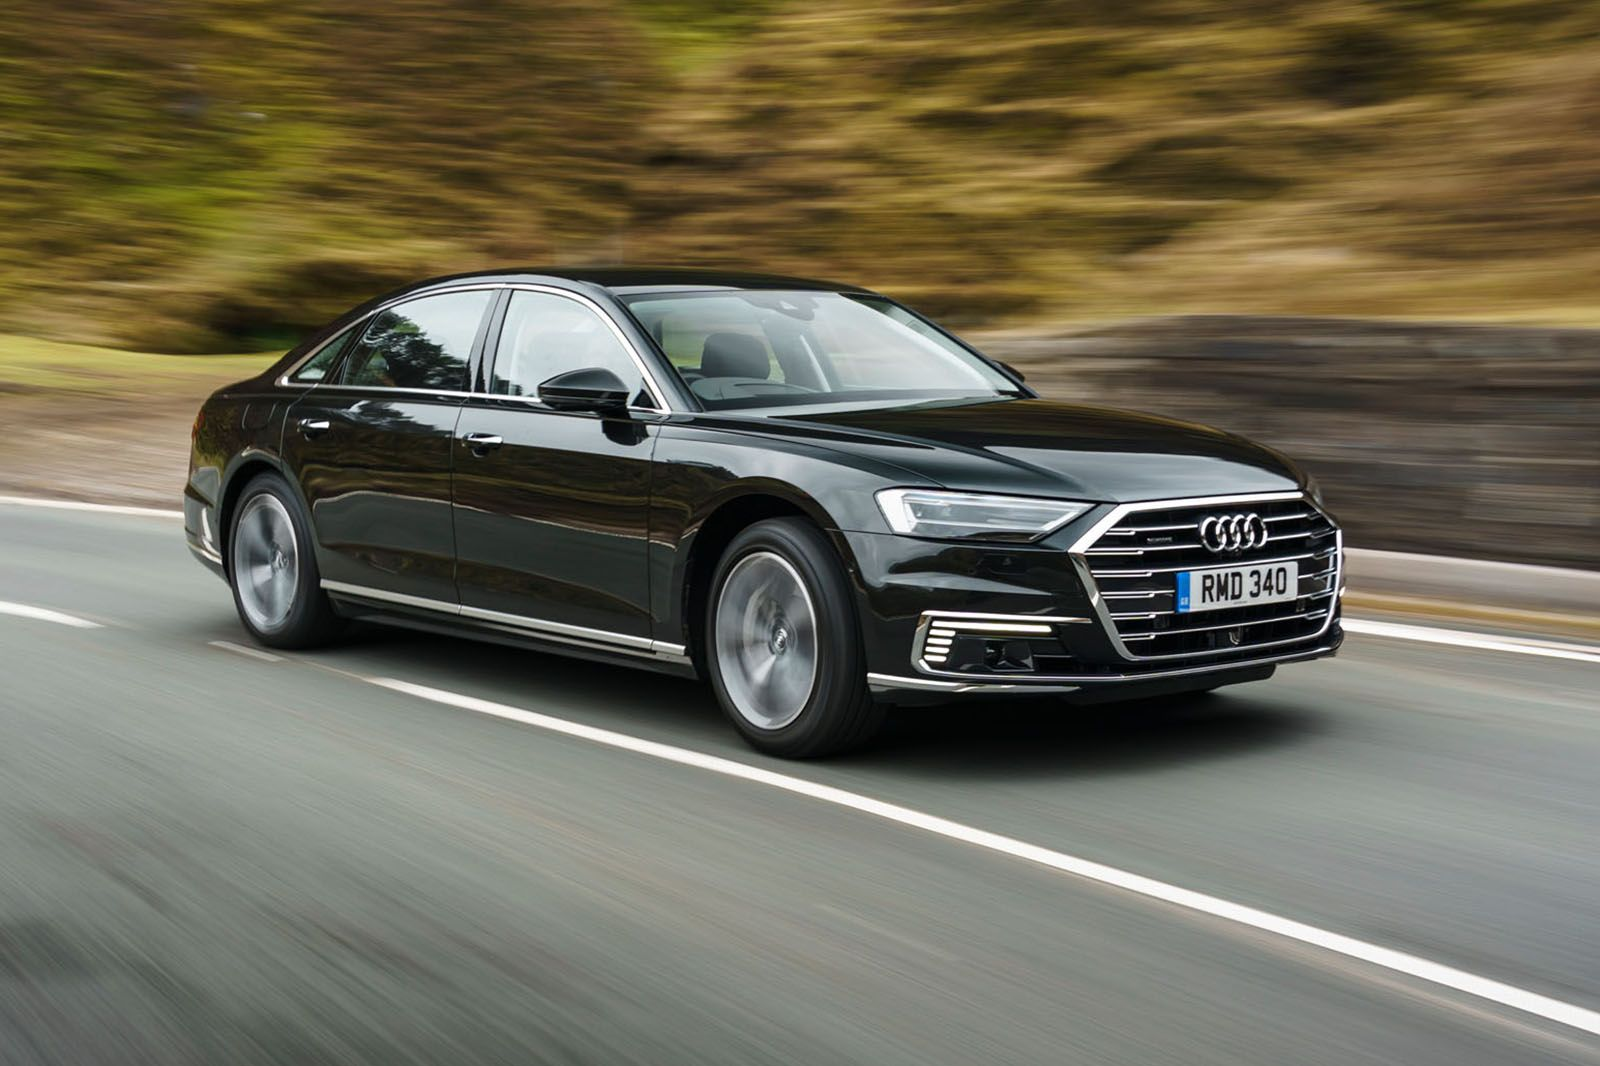 2020 Audi A8 L In Usa Konfigurationen In 2020 Audi A8 Audi Owners Manuals